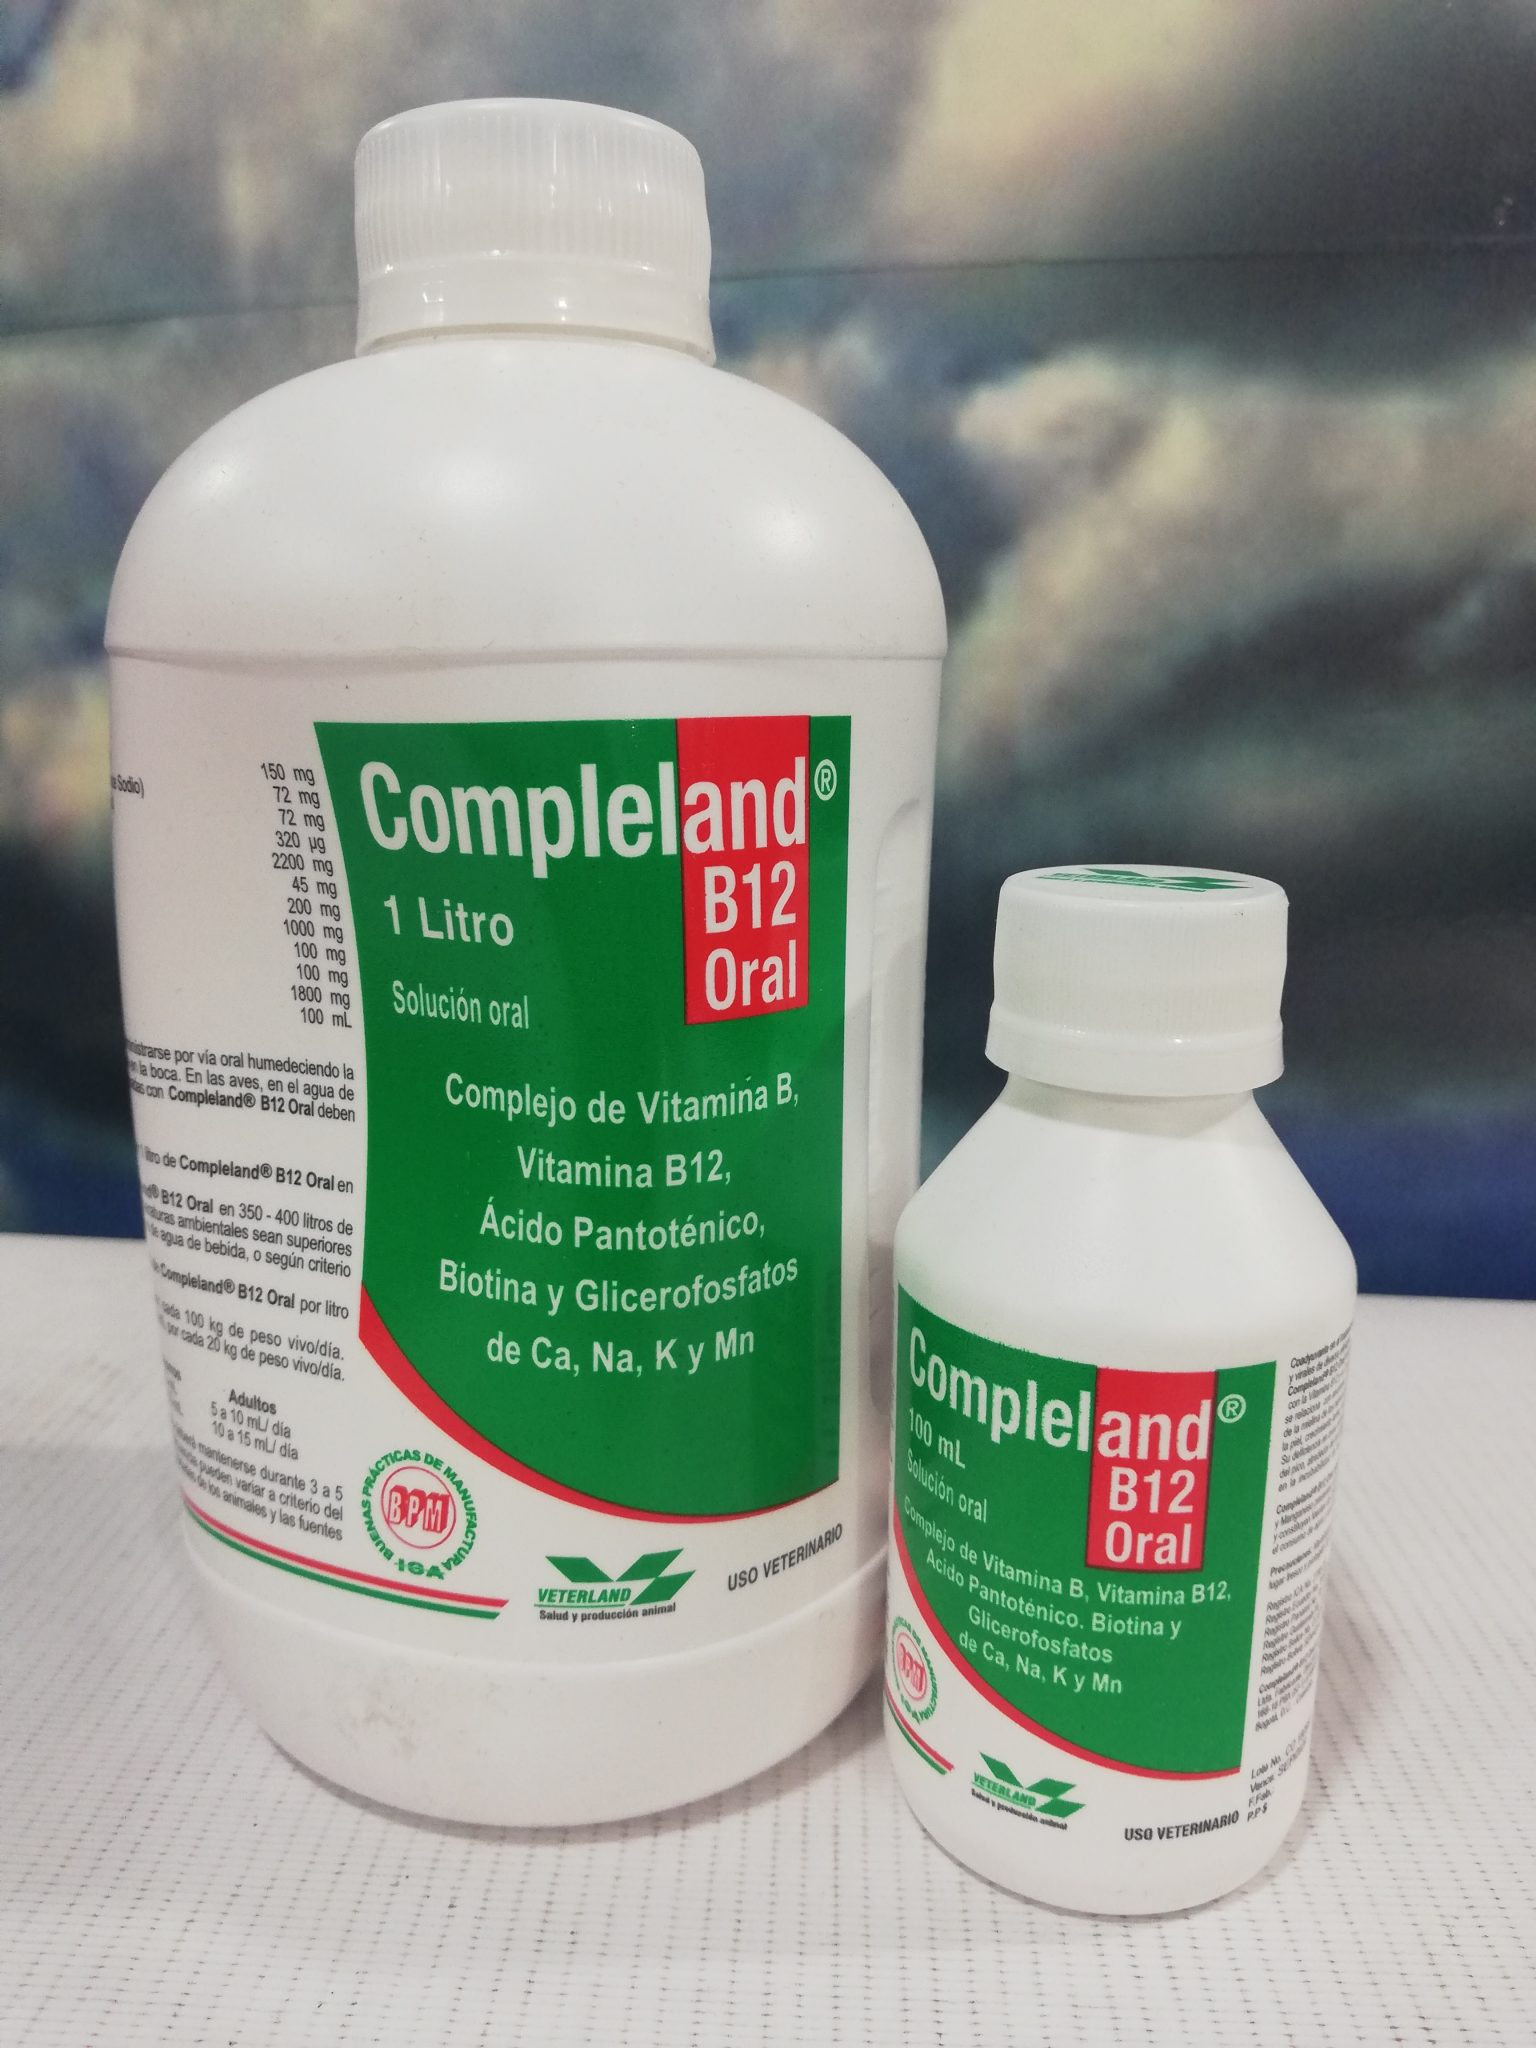 COMPLELAND B12 ORAL X 100 ML VETERLAND